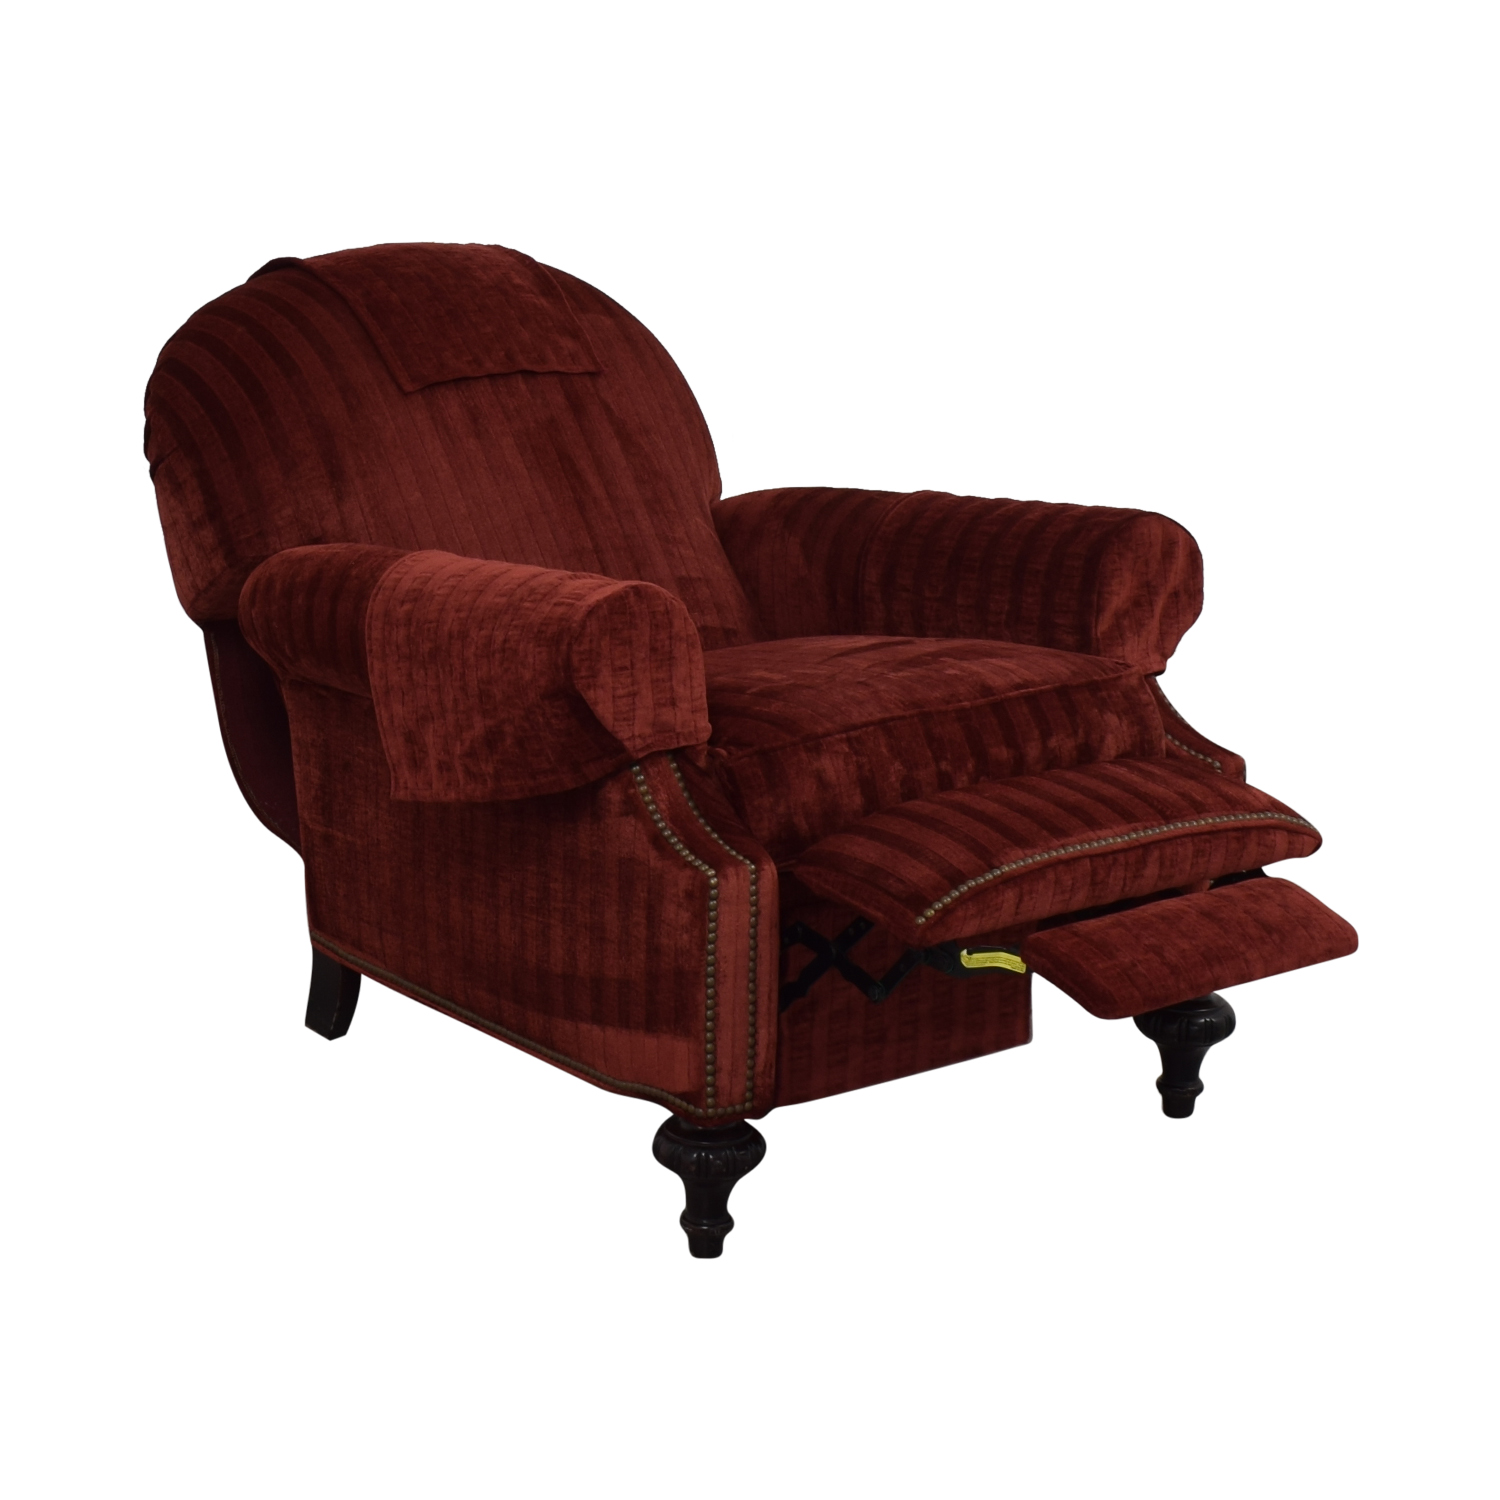 Vanguard Furniture Vanguard Furniture Club Recliner Chair red